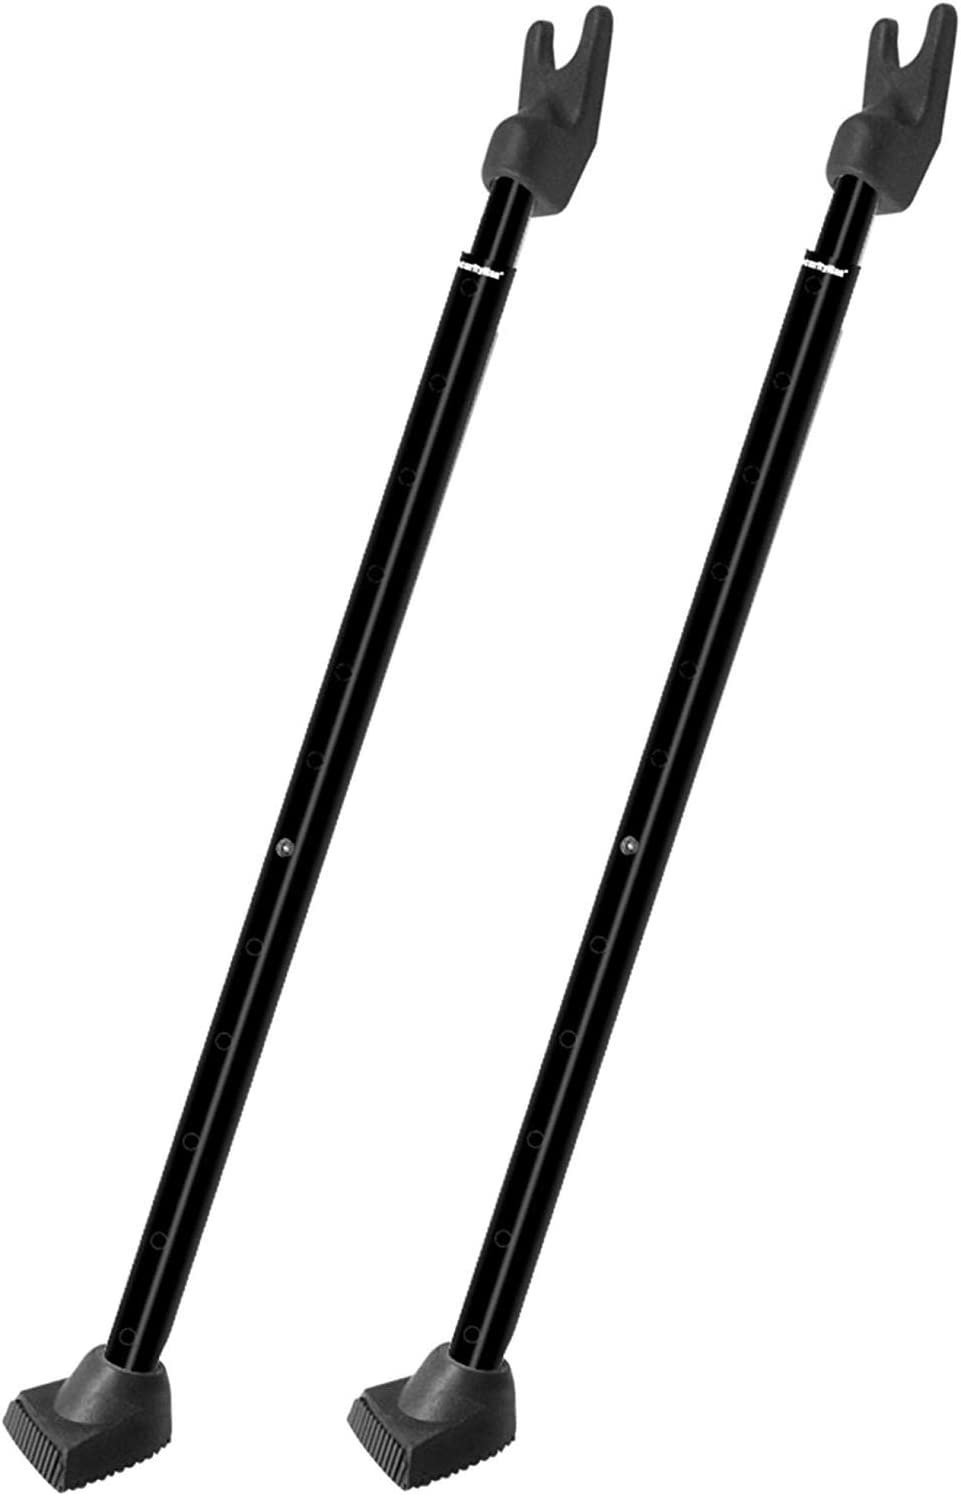 SECURITYMAN 2-in-1 Door Security Sliding New Shipping Free Securi Sale SALE% OFF Patio Bar